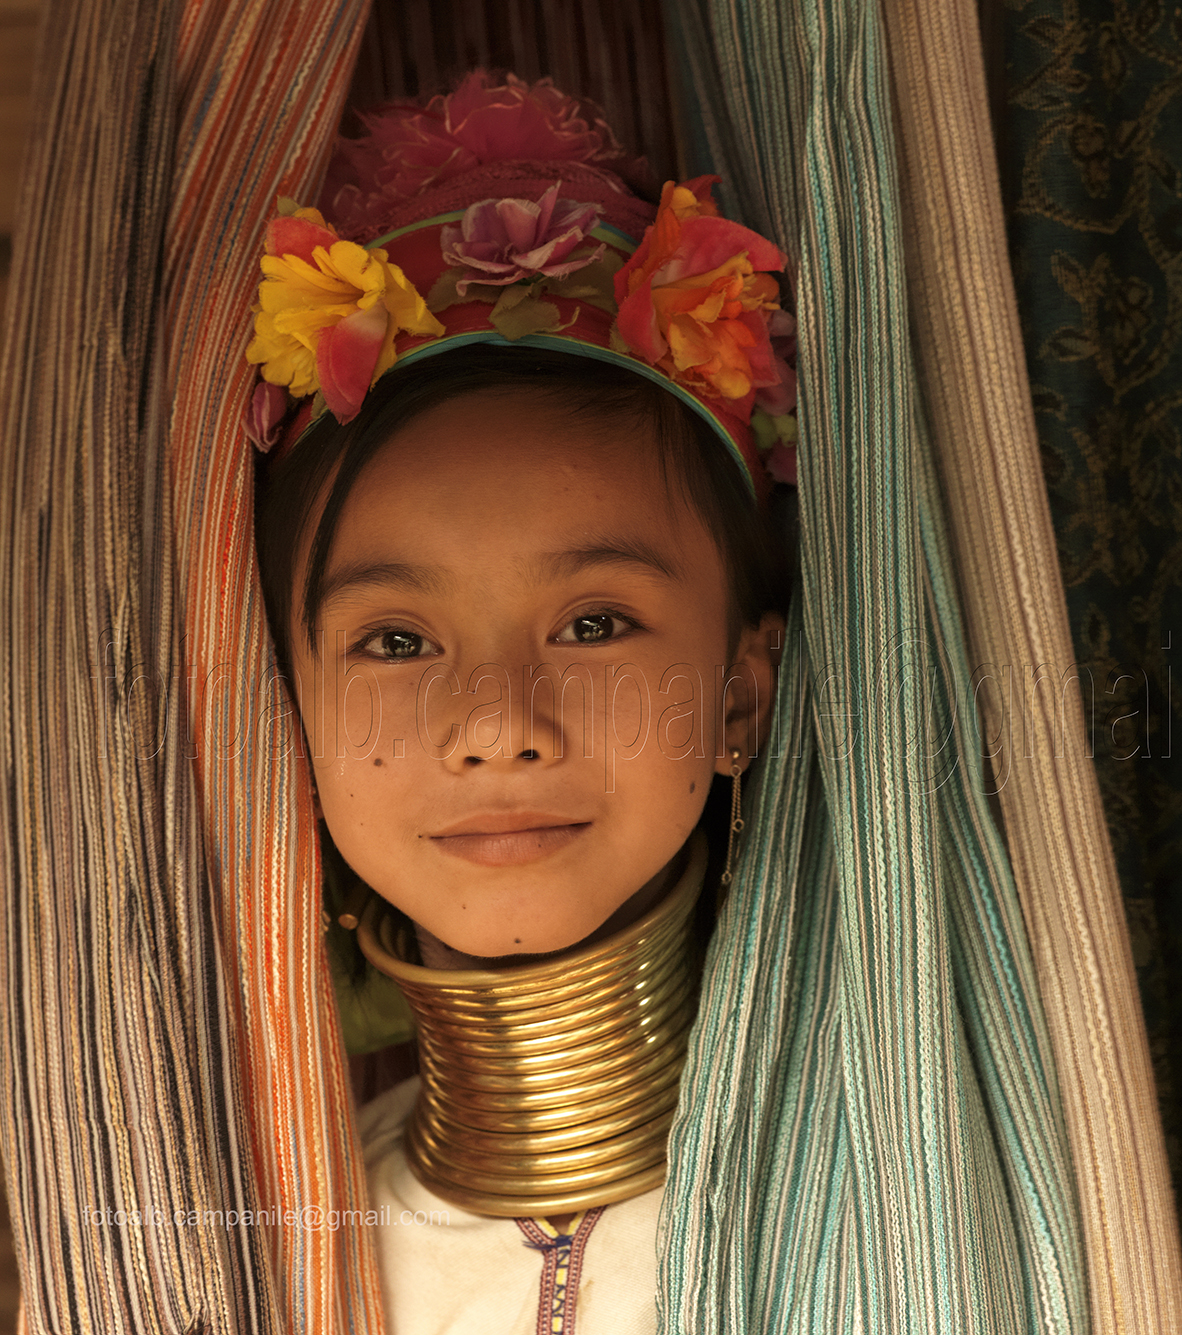 Woman with long necks, Ban Ya Pa village, Thailand